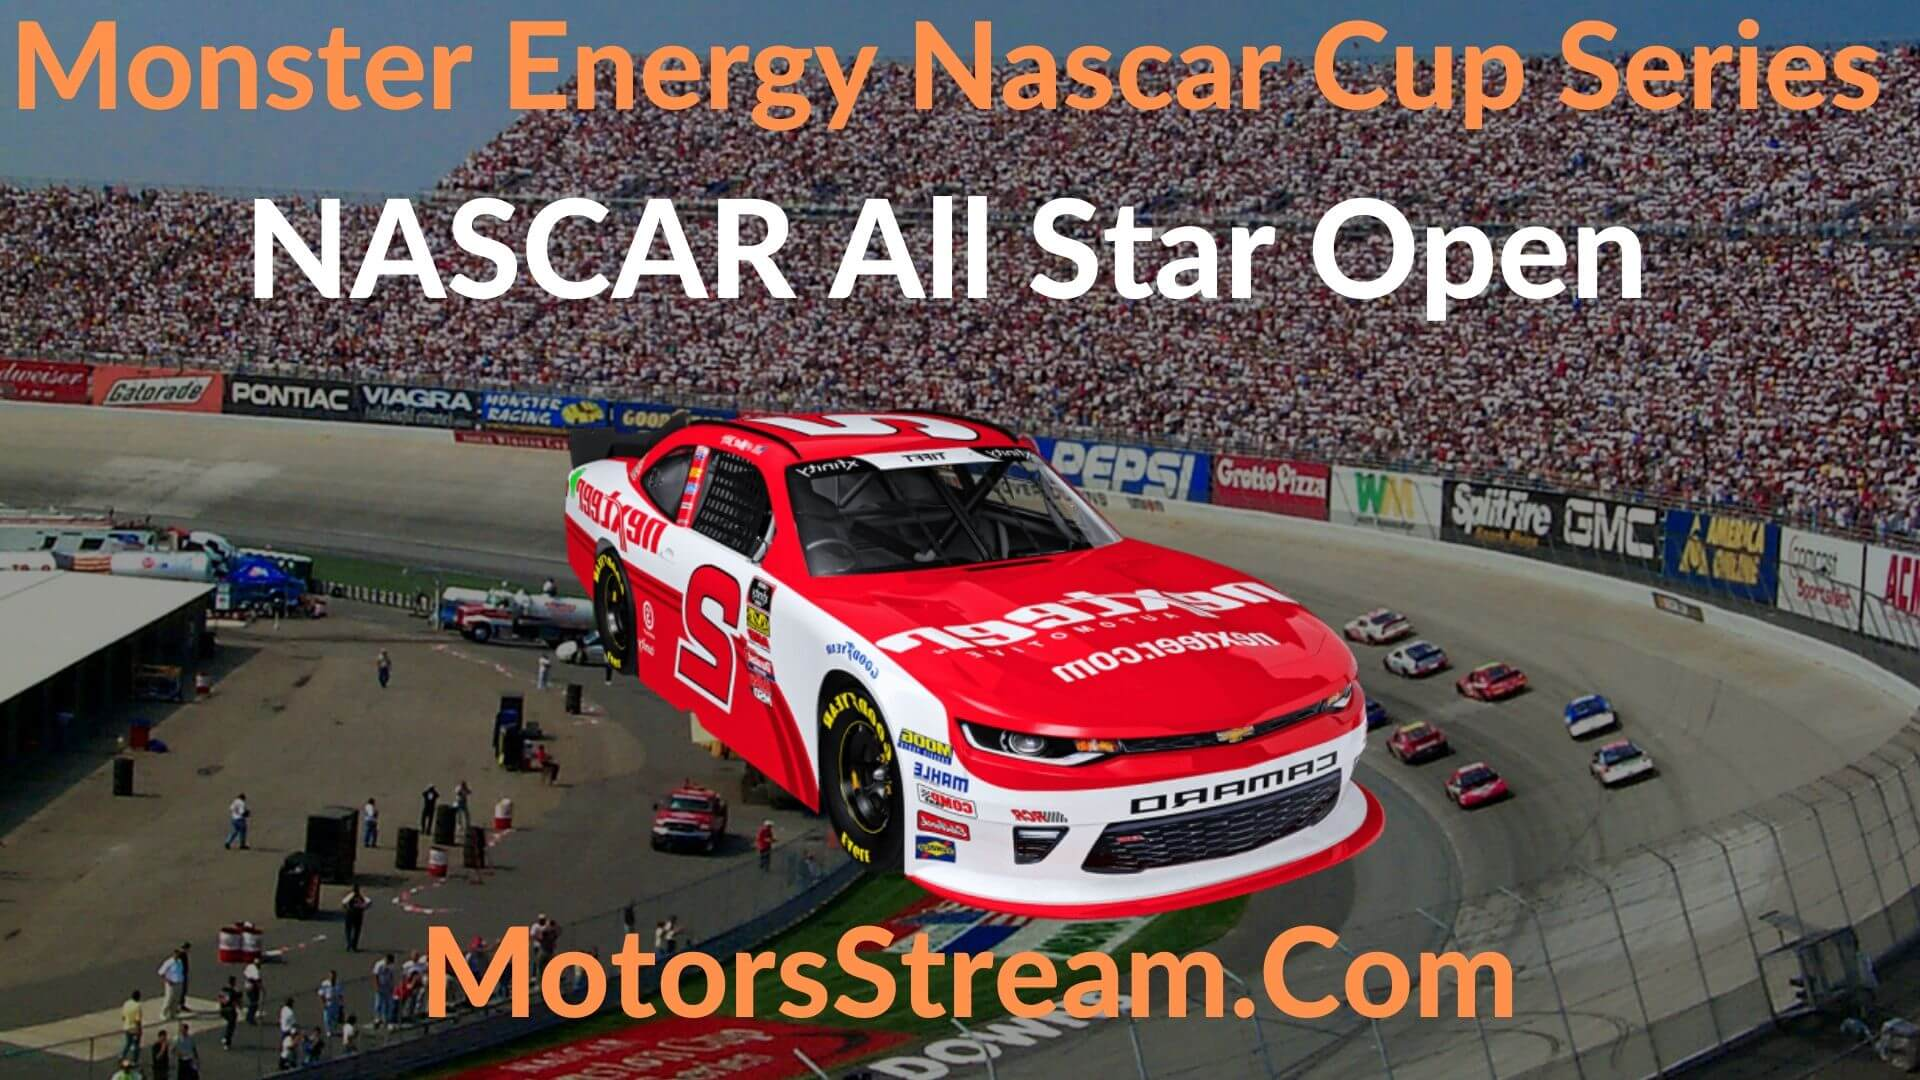 NASCAR All Star Open Live Steam | NASCAR CUP 2020